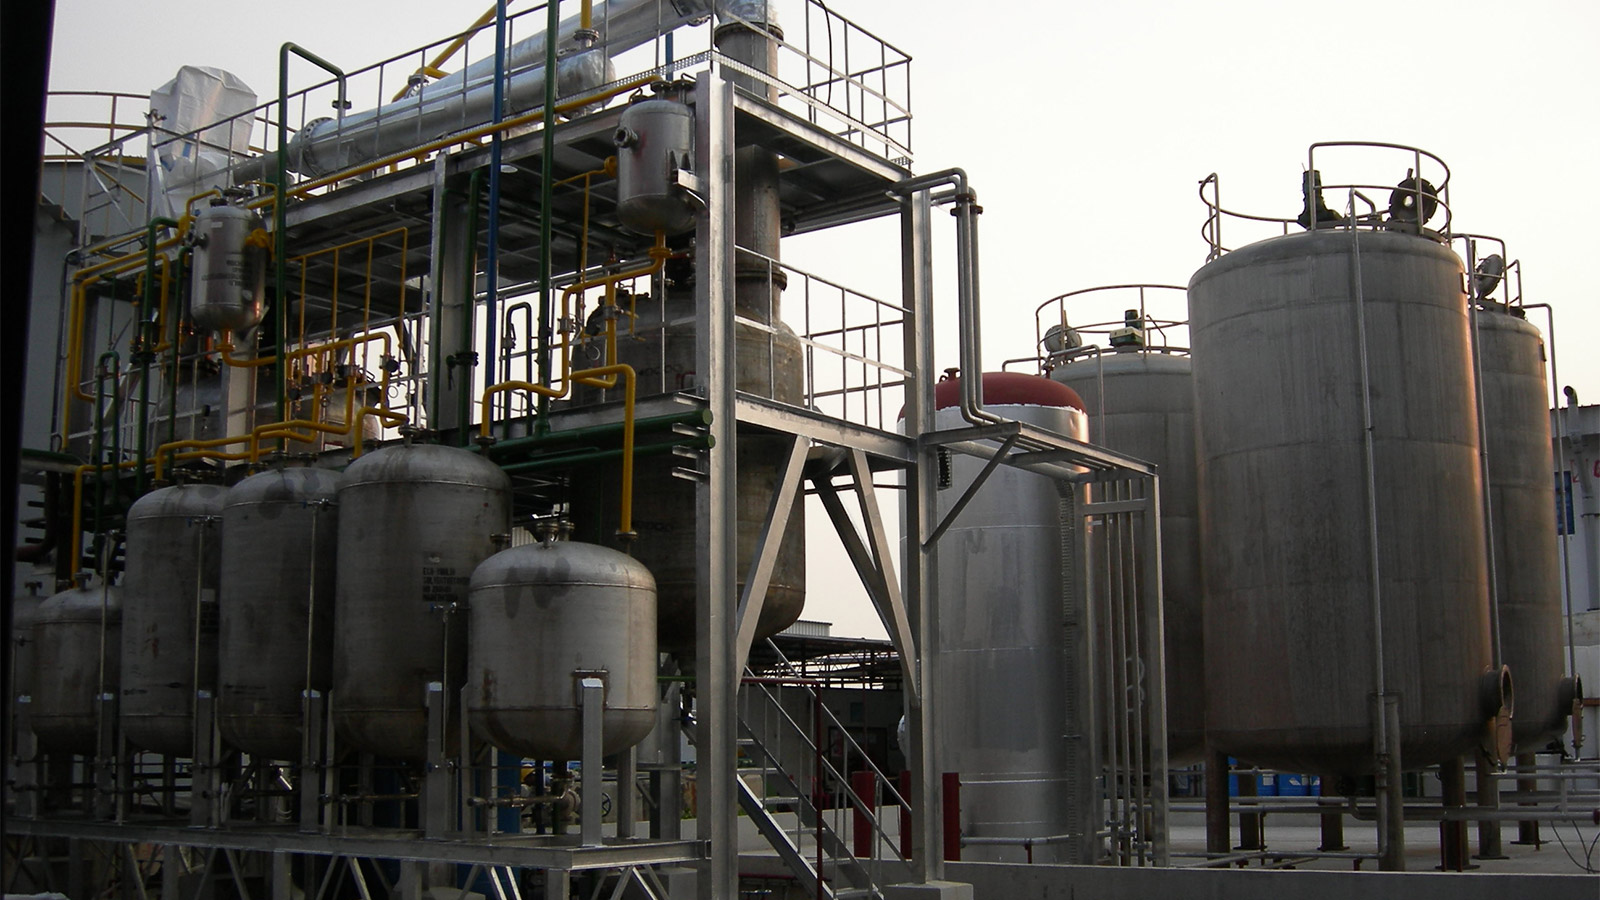 Oil & Solvent recovery facility